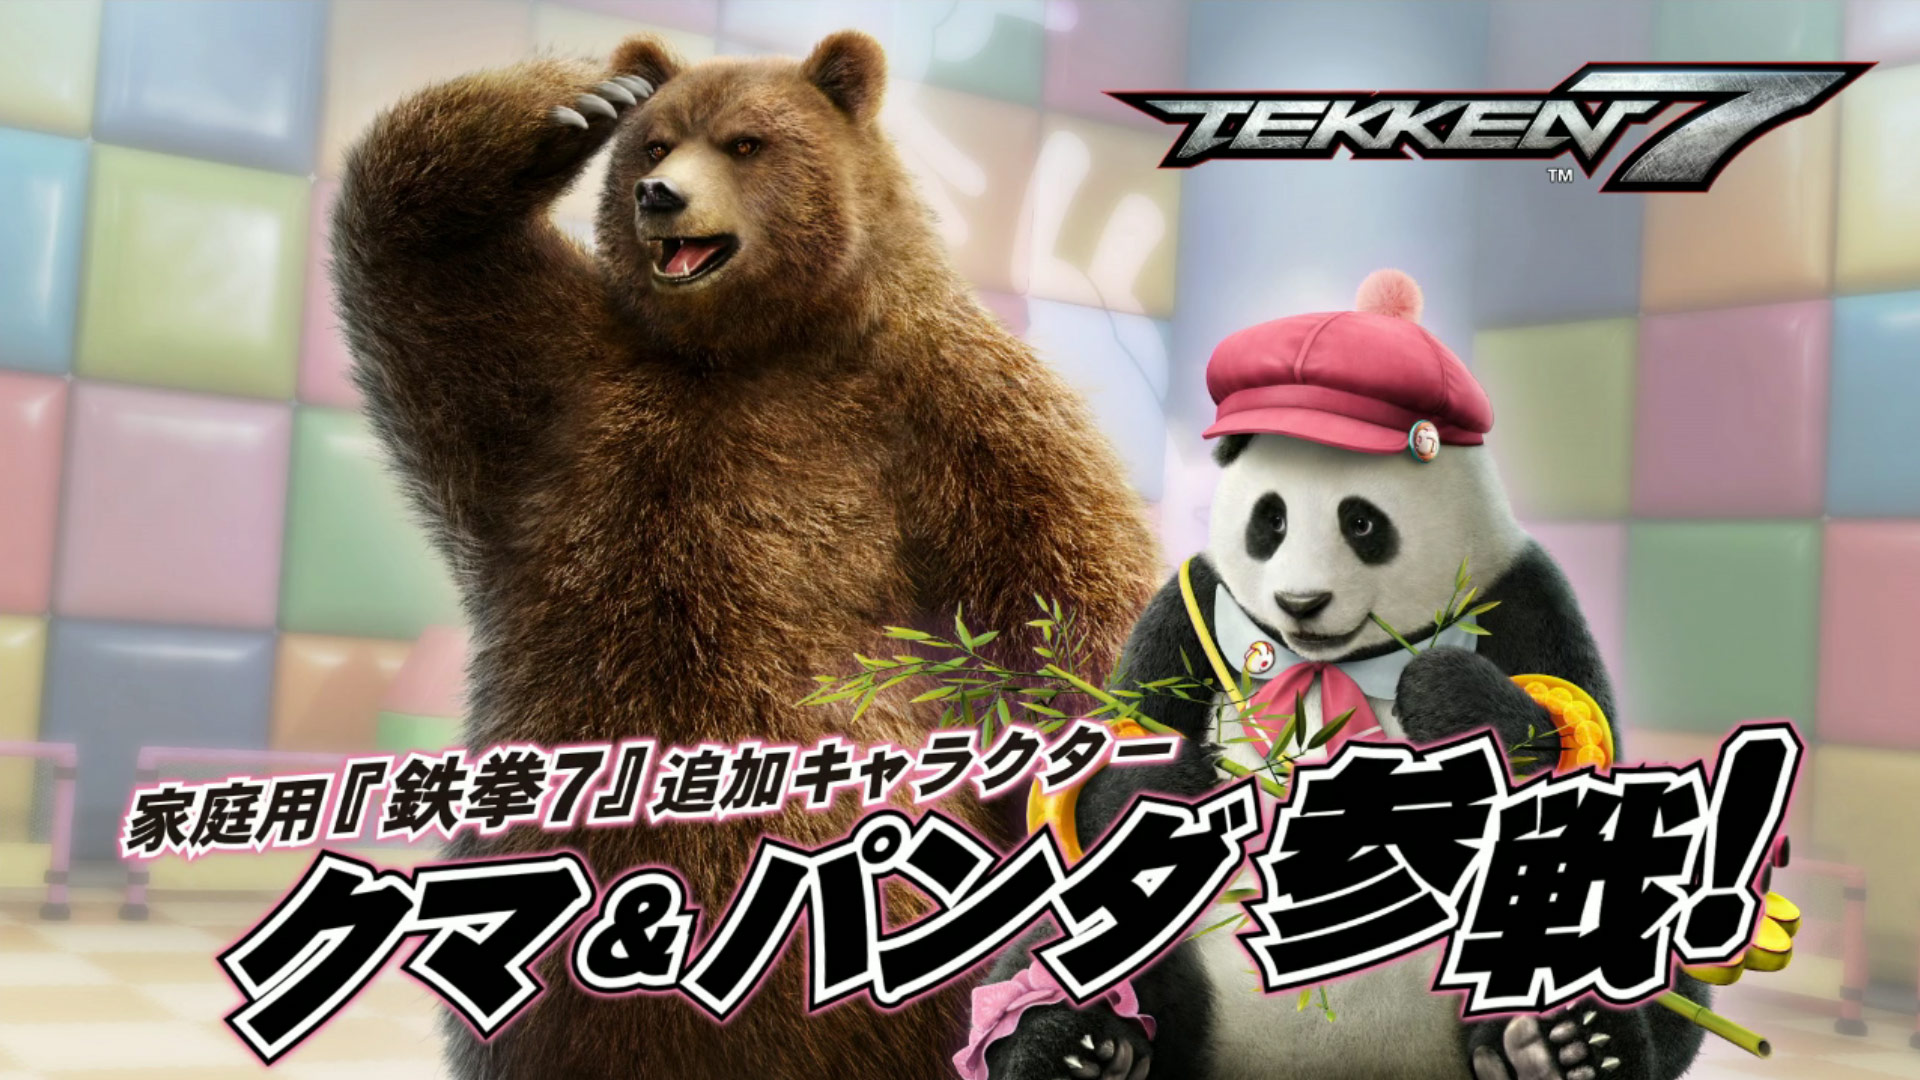 Tekken 7: Fated Retribution Kuma & Panda Reveal 1 out of 6 image gallery